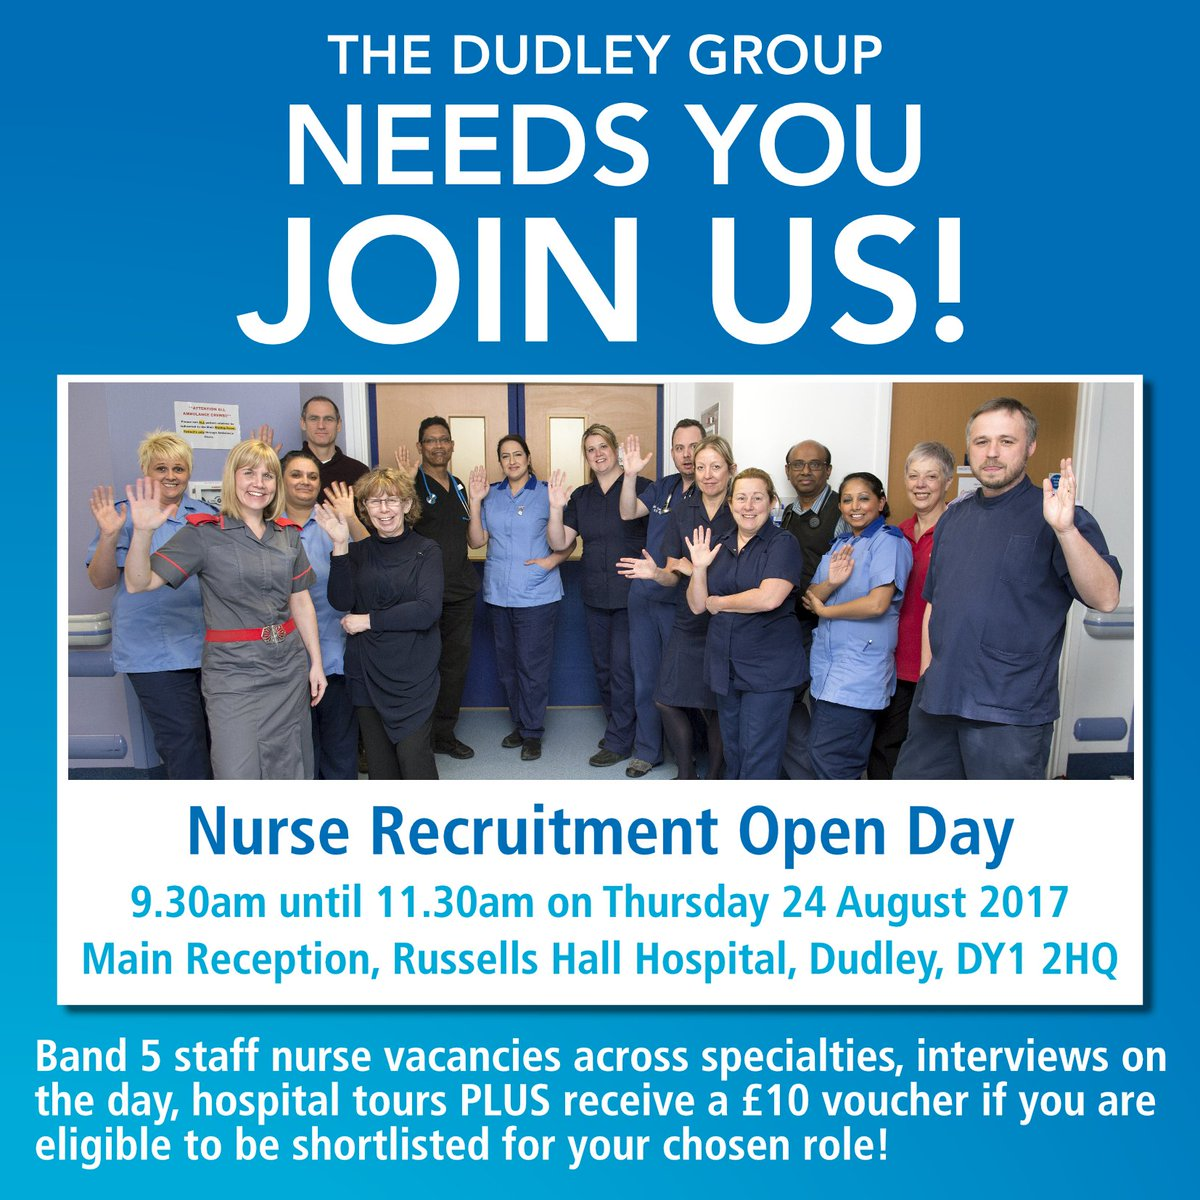 Nurse Recruitment Open Day - Thurs 24th Aug @ Russells Hall Hospital, Dudley. Band 5 staff nurse vacancies across all specialties! #joinus <br>http://pic.twitter.com/E8yvE6WozW